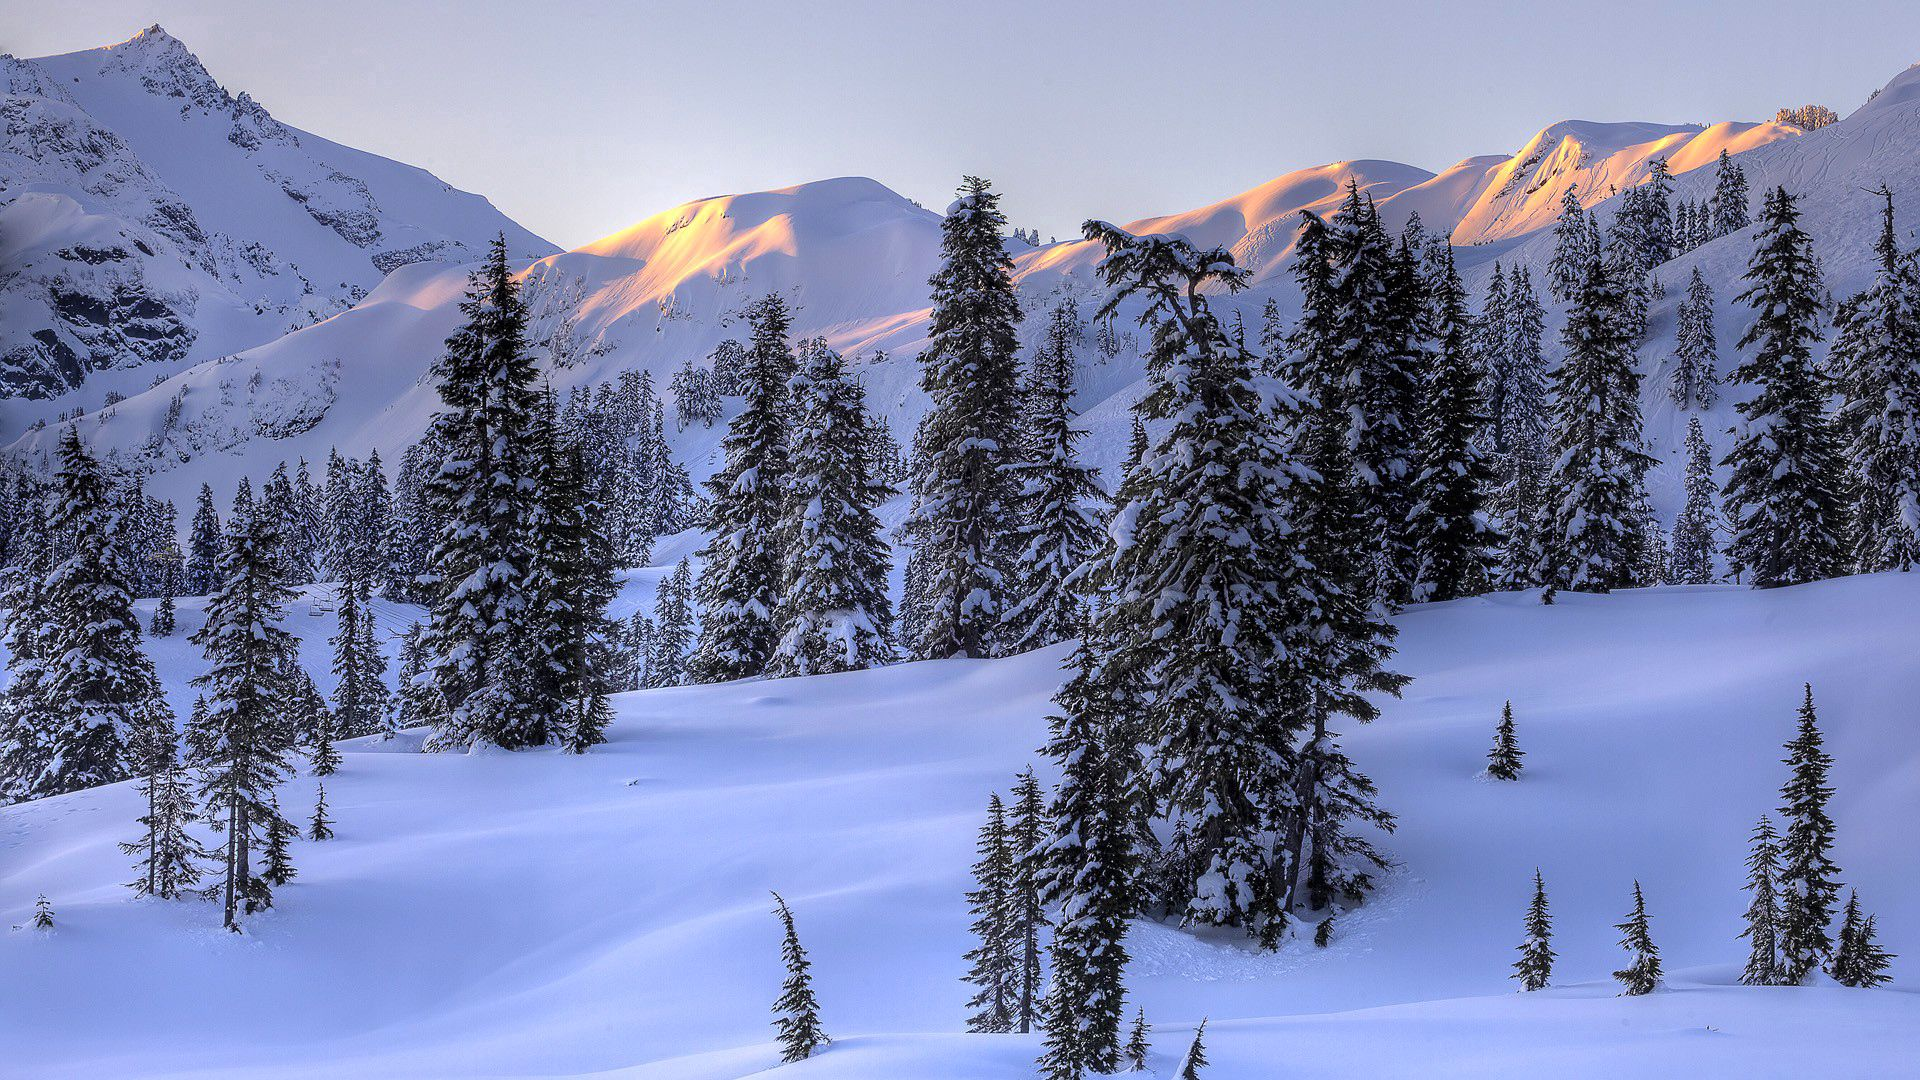 97383 download wallpaper Winter, Nature, Trees, Mountains, Snow screensavers and pictures for free